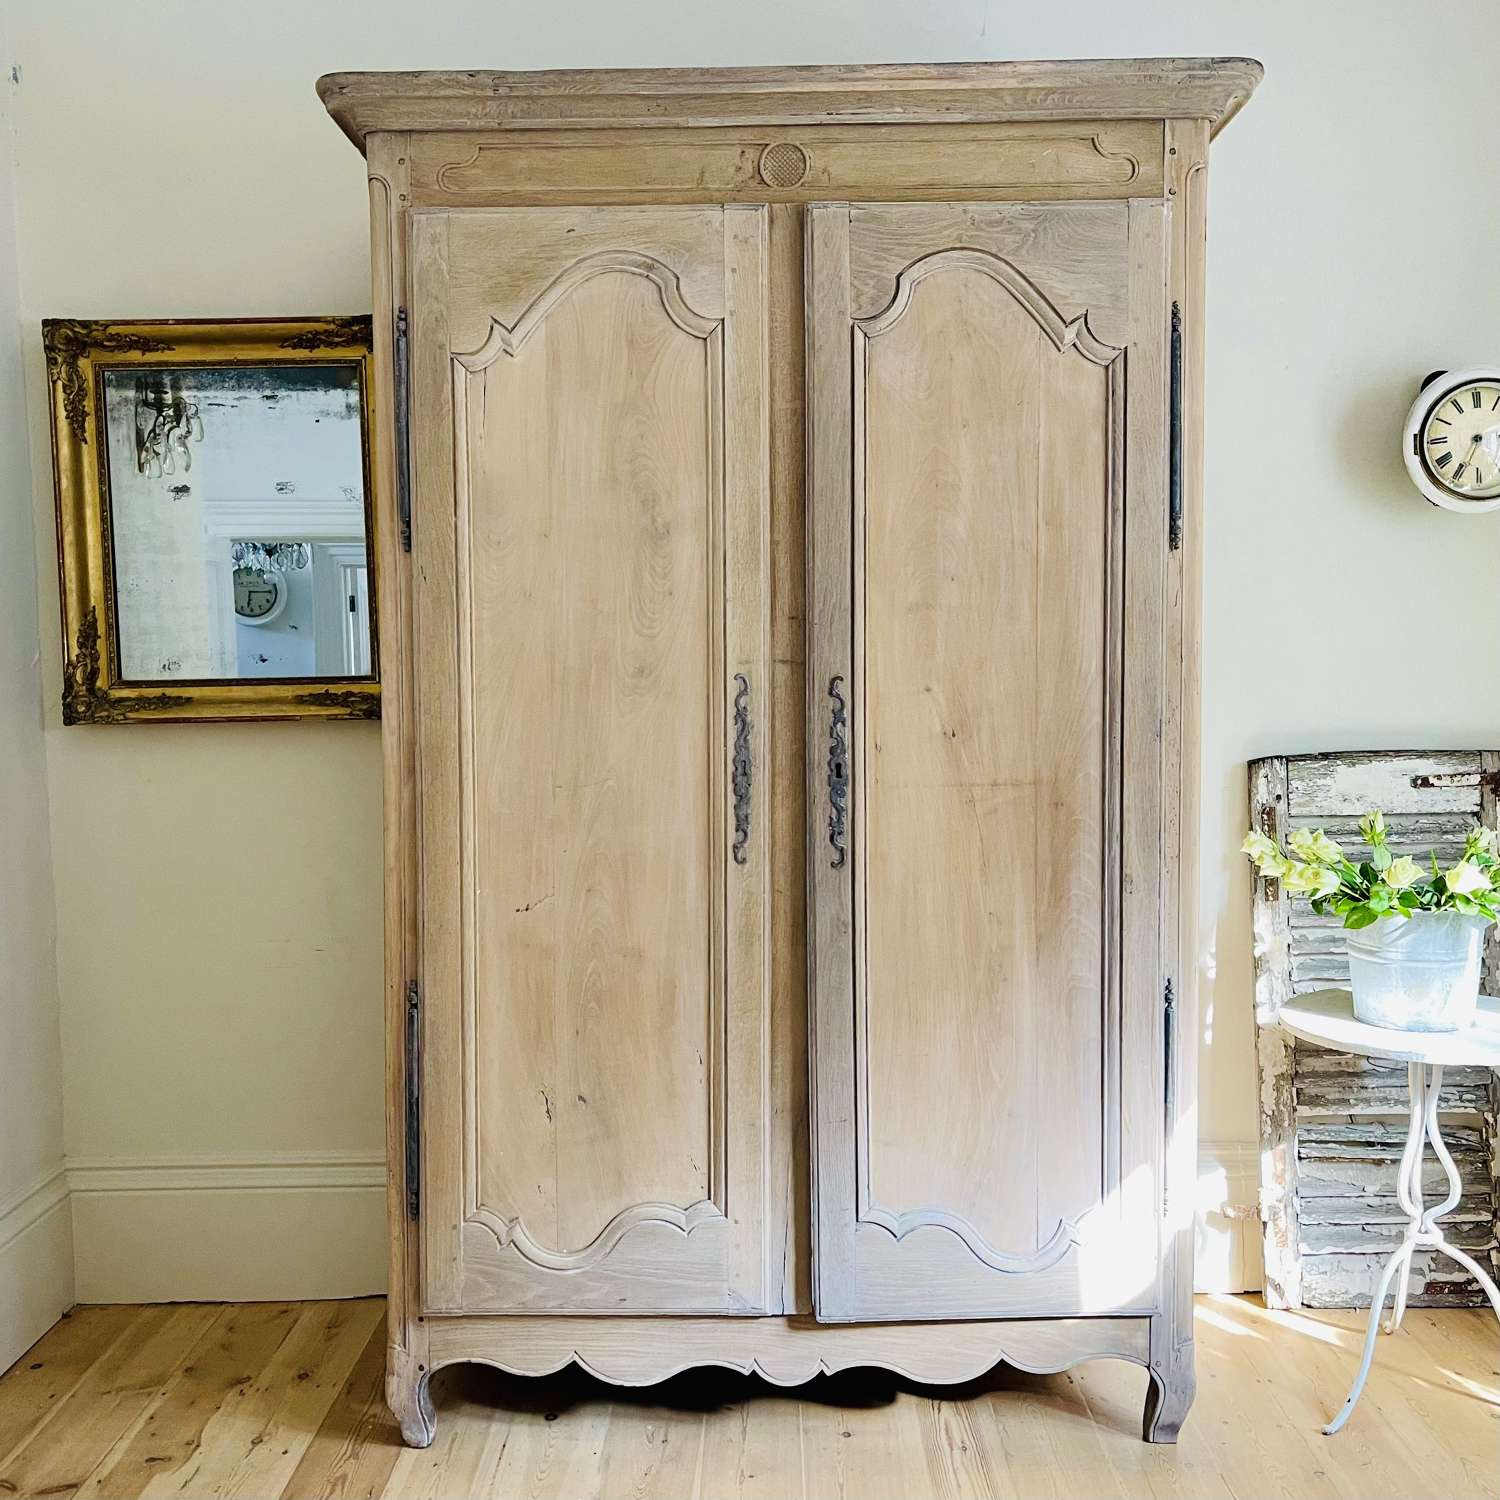 19th century French oak armoire wardrobe with hanging rail